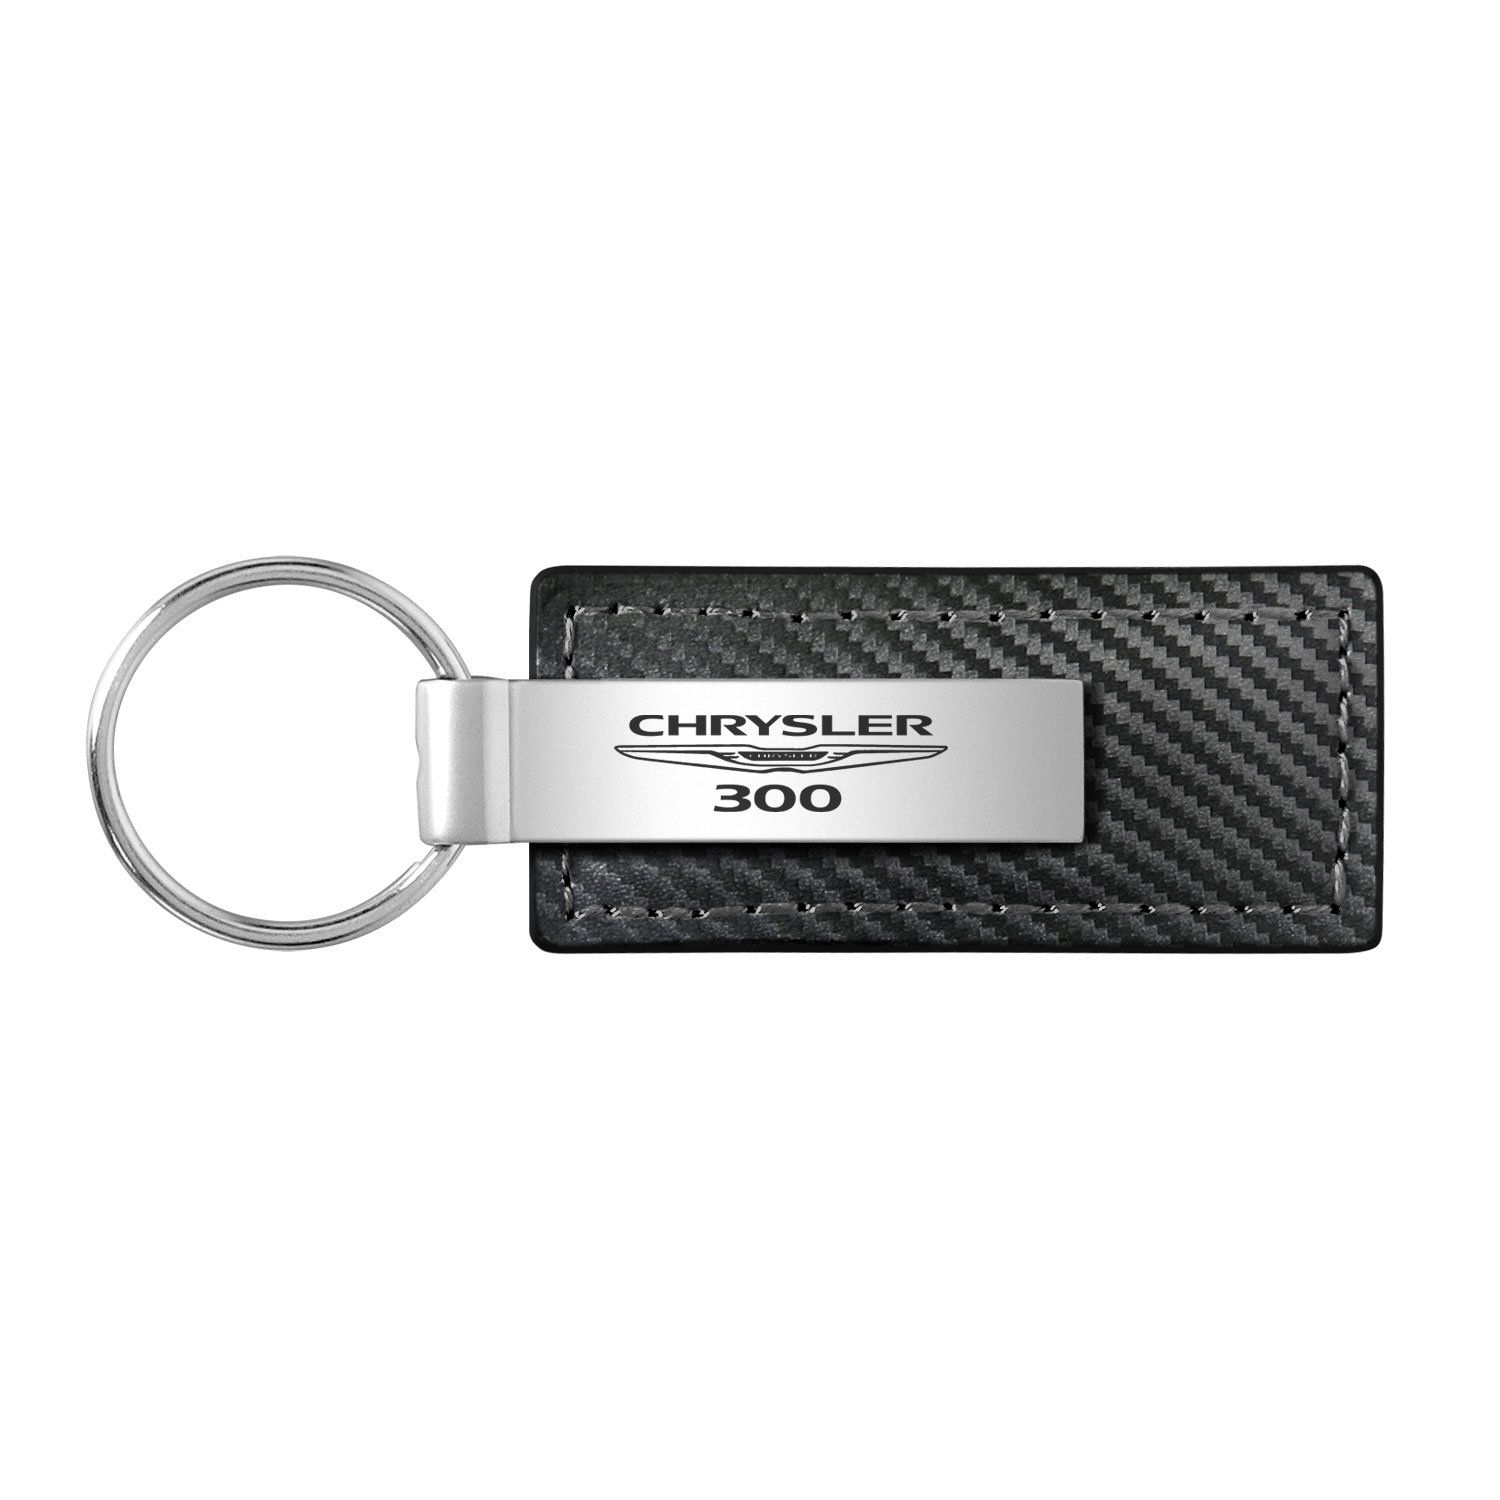 Chrysler 300 Black Carbon Fiber Texture Leather Key Chain Au-Tomotive Gold INC